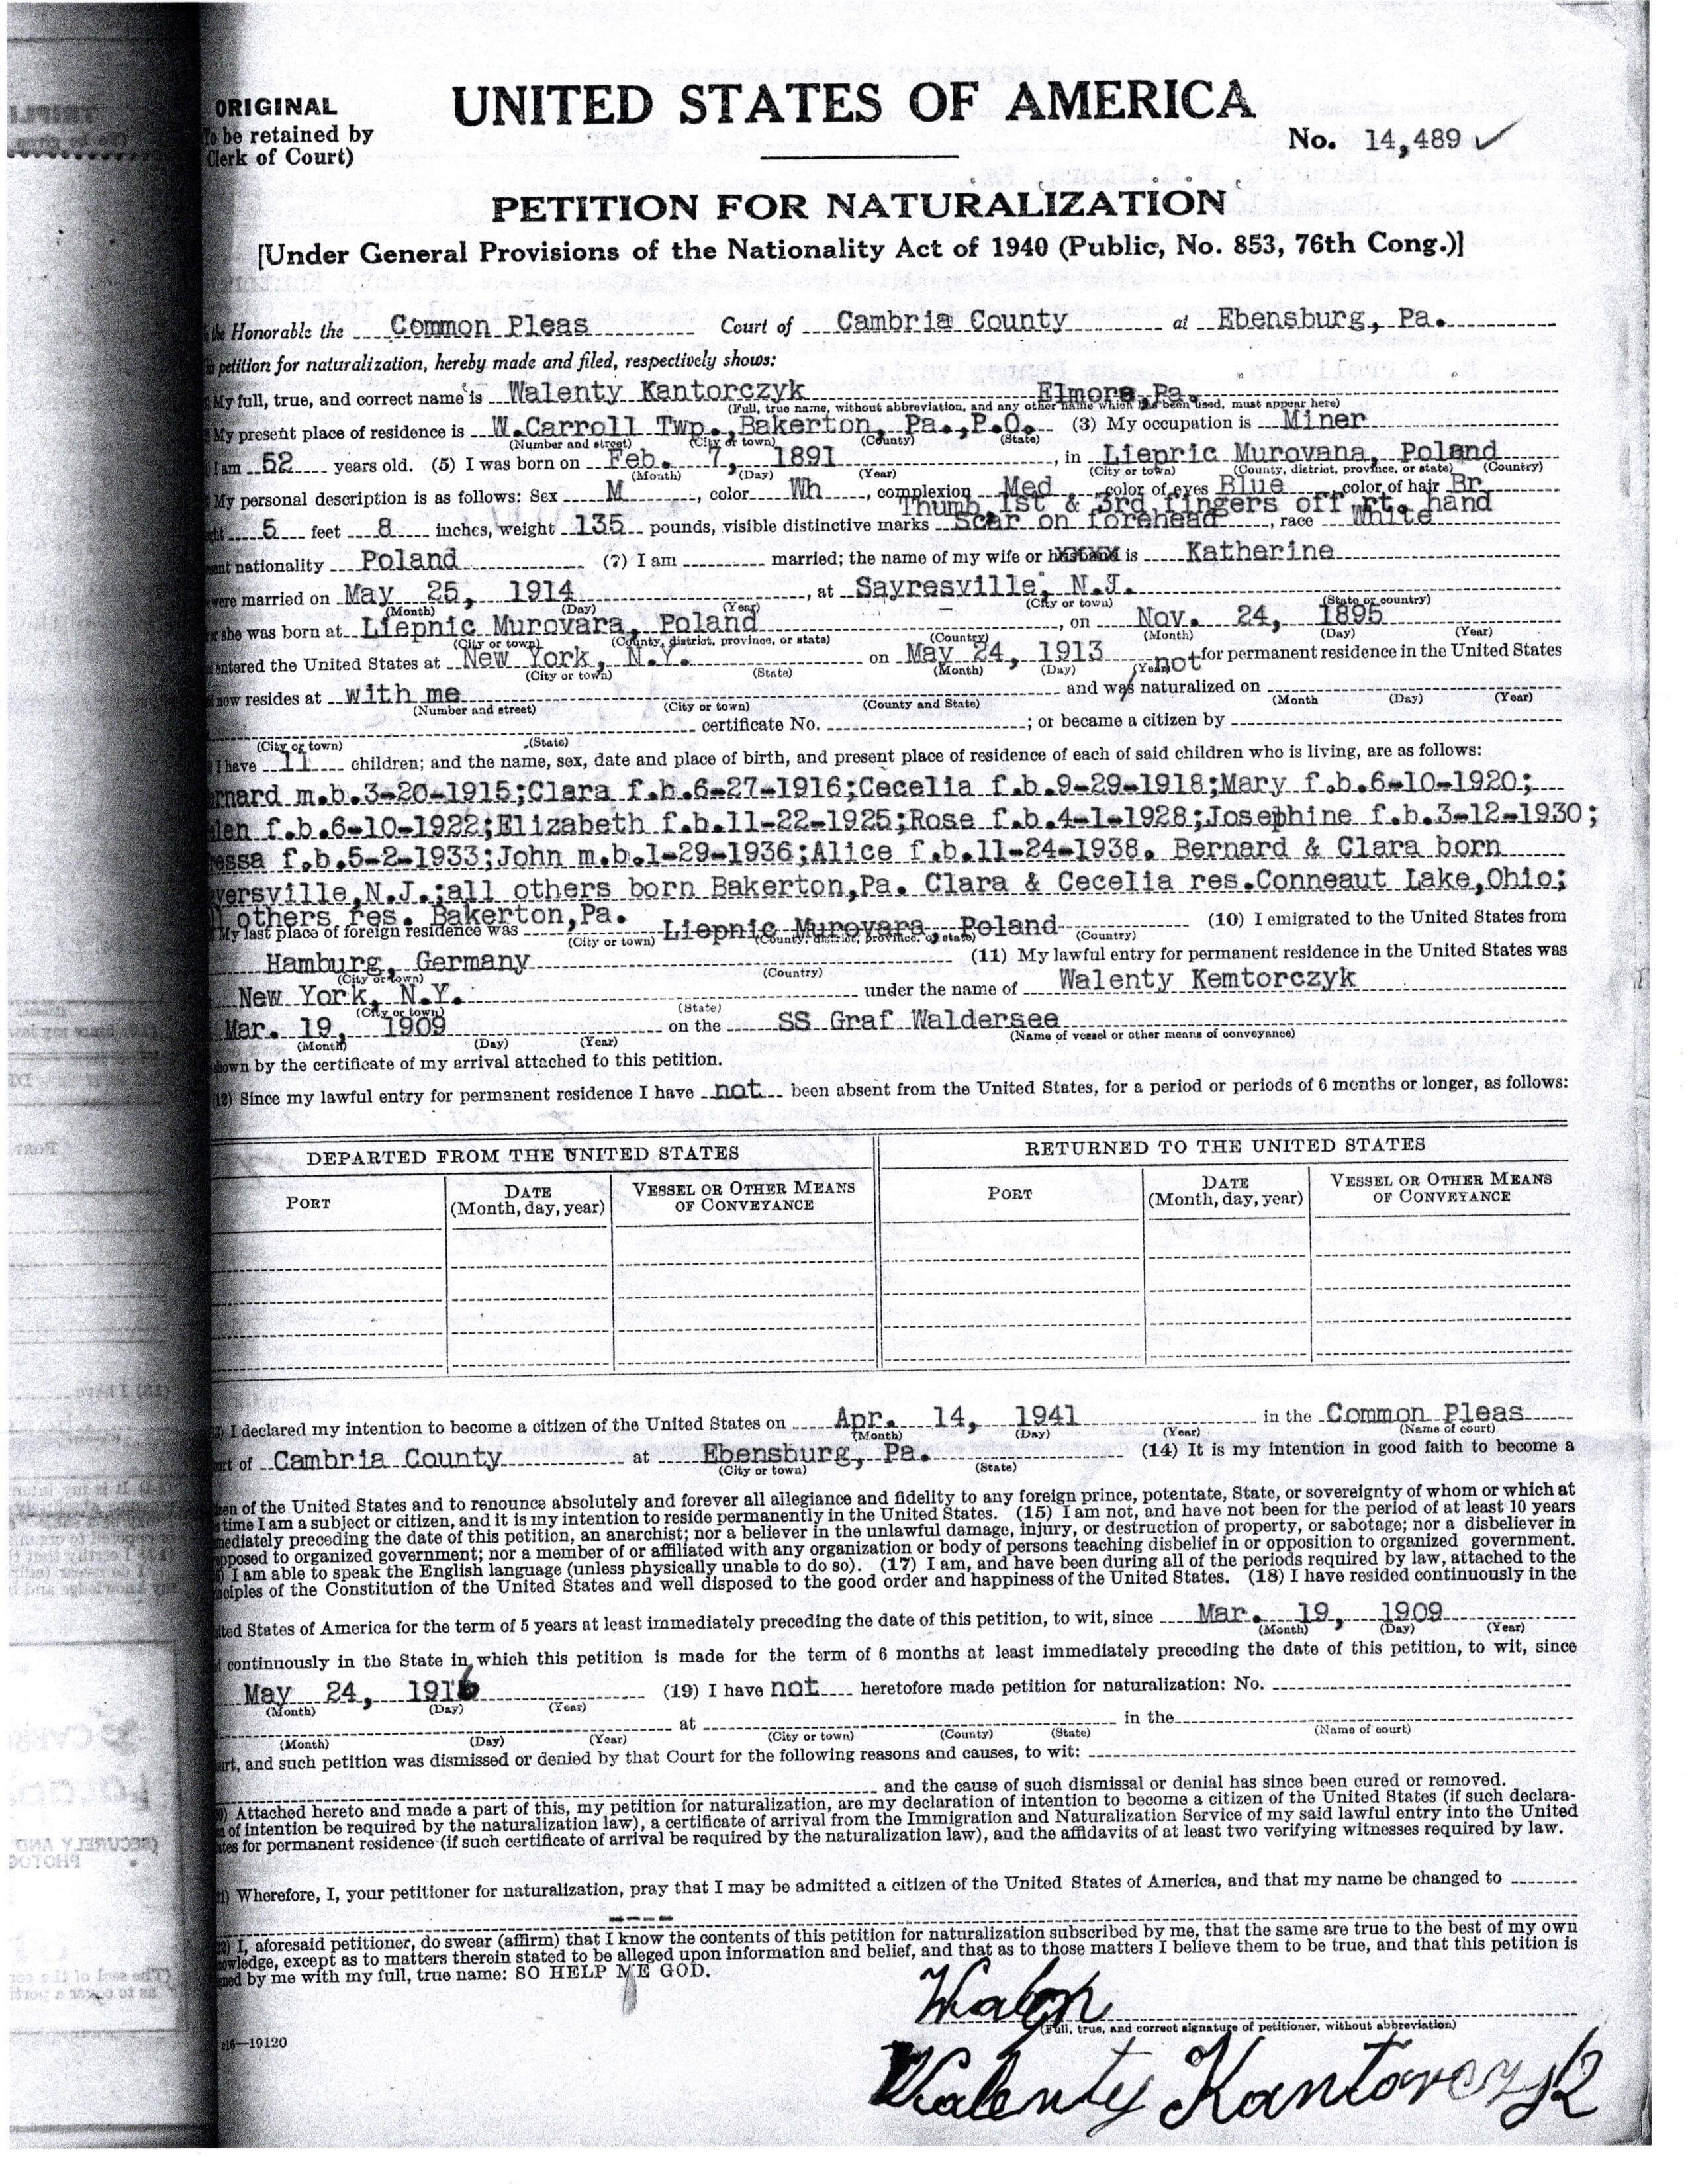 1941-04-14 Petition For Naturalization - Walenty Kantorczyk